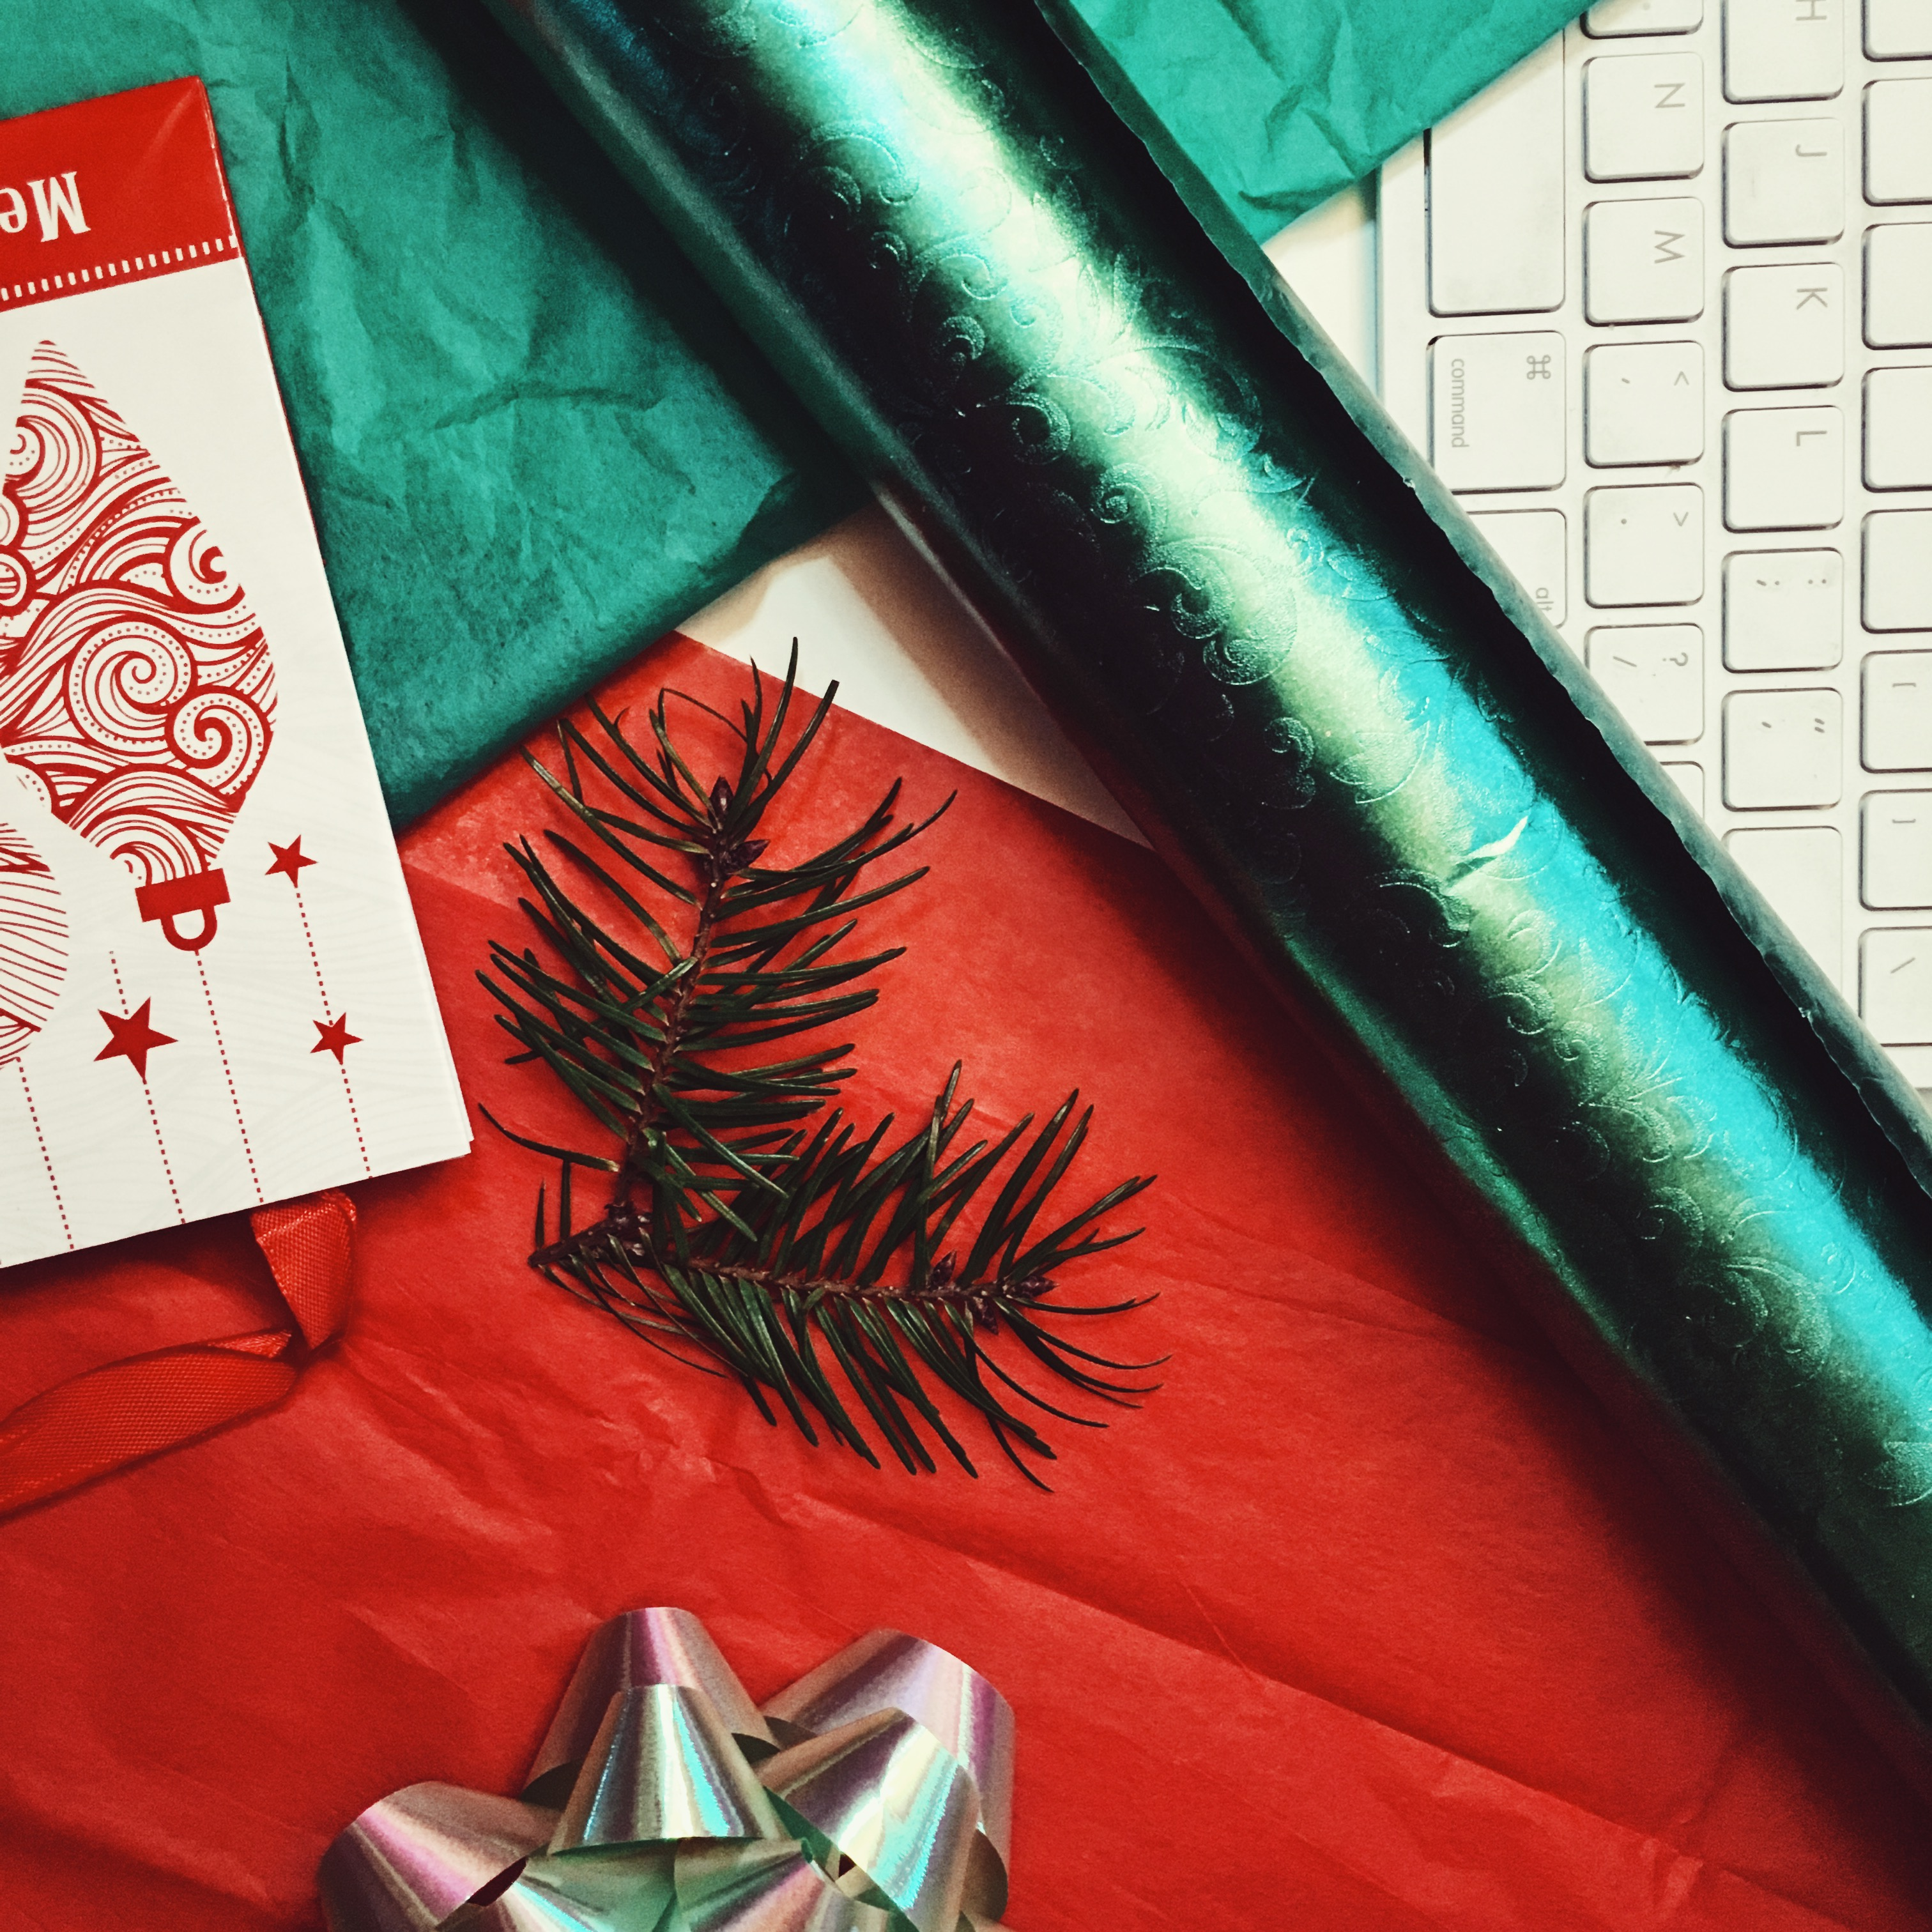 lcm-liveclothesminded-paperless post-christmas post-ecard-festive-holiday